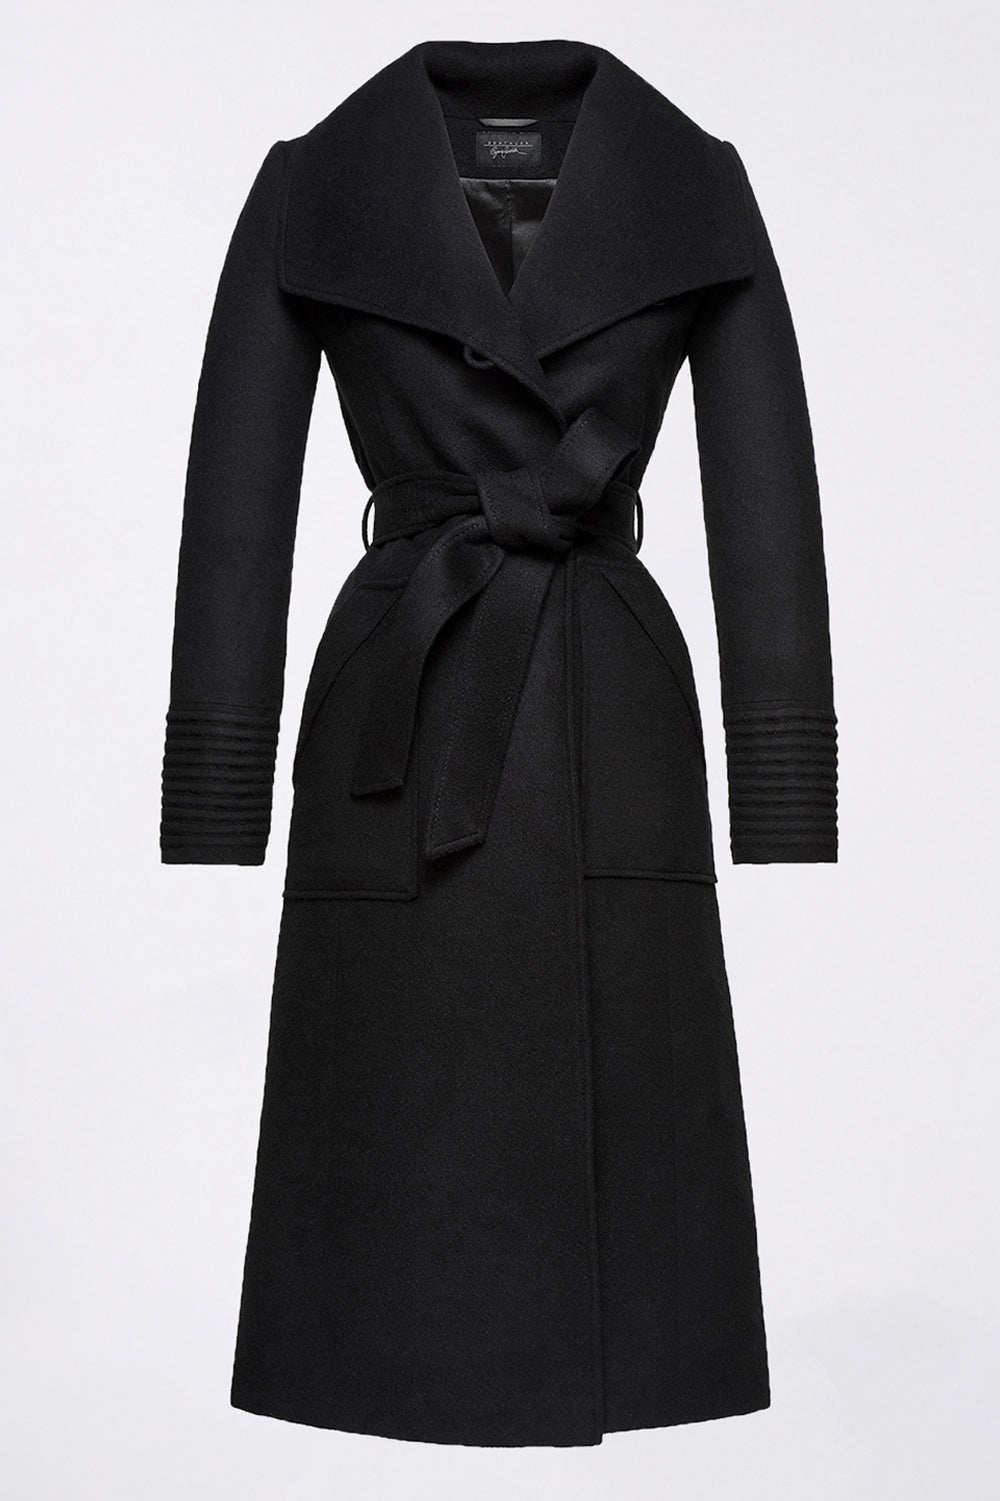 Sentaler Long Wide Collar Wrap Coat featured in Baby Alpaca and available in Black. Seen off model.